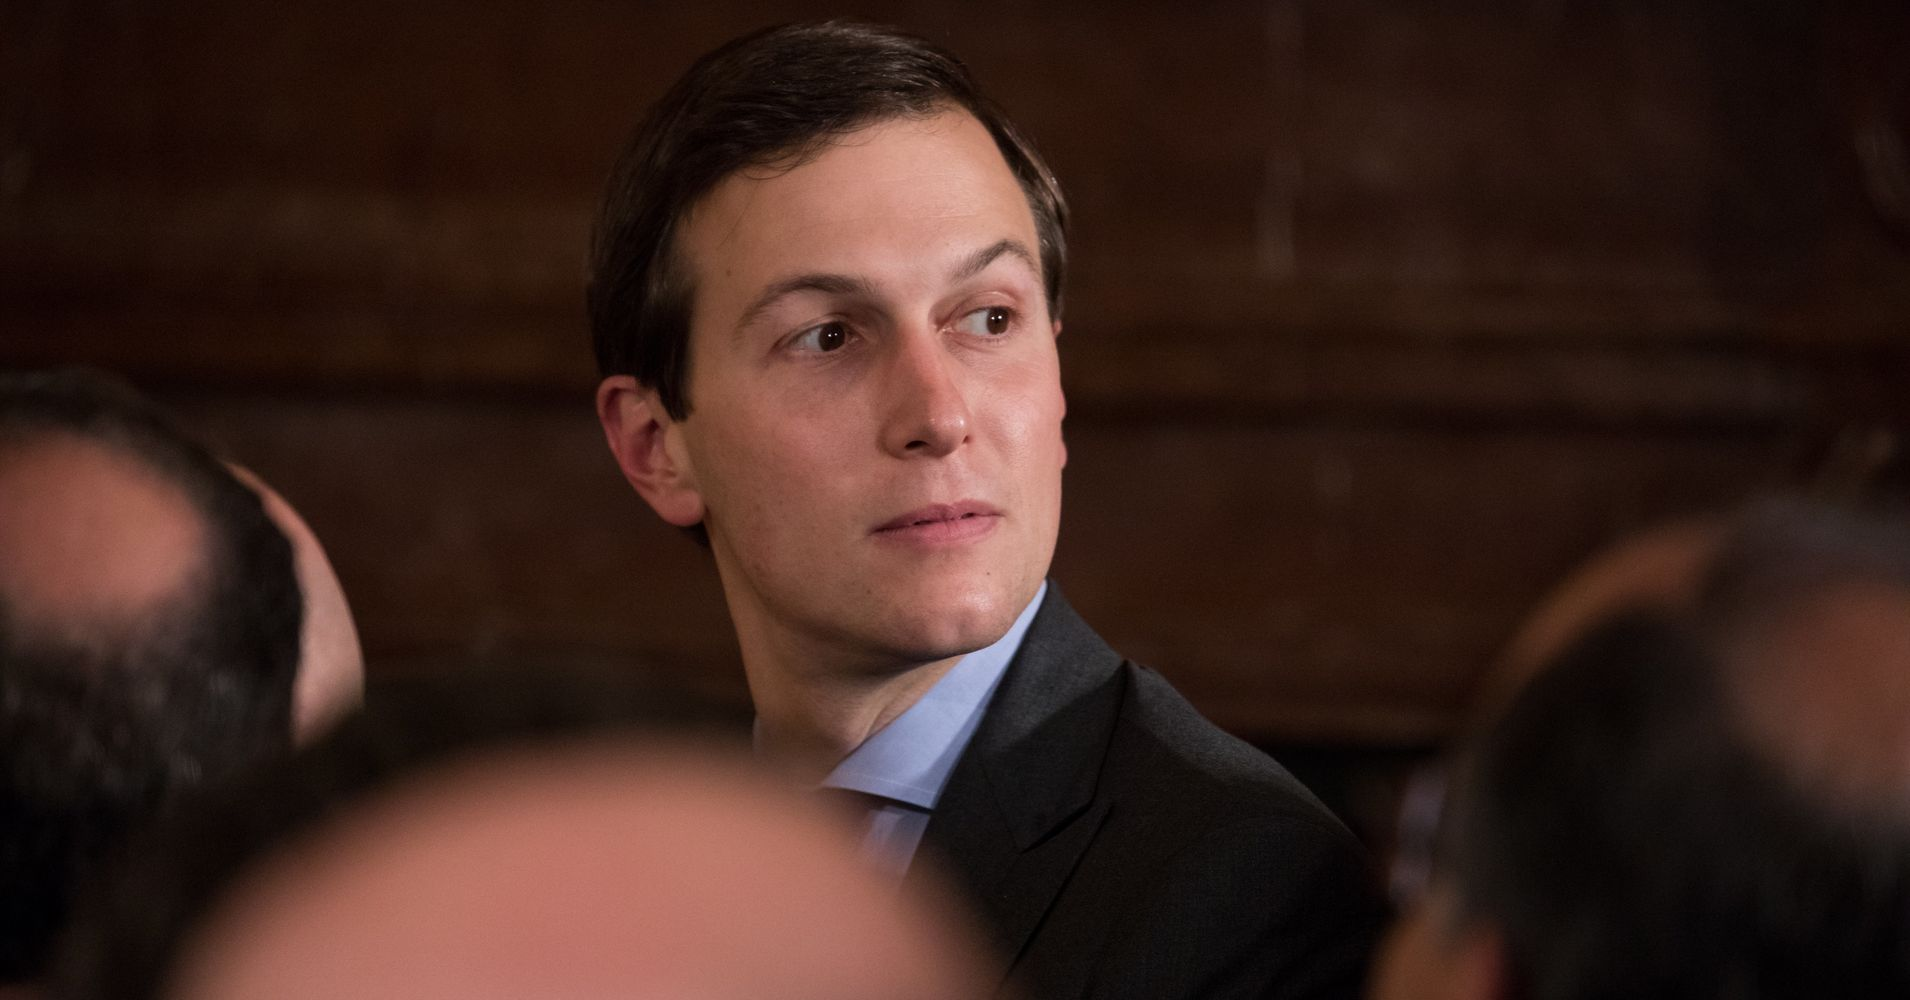 How To Say Good Morning In Korean Audio : Reports indicate the fbi has their eye on kushner huffpost